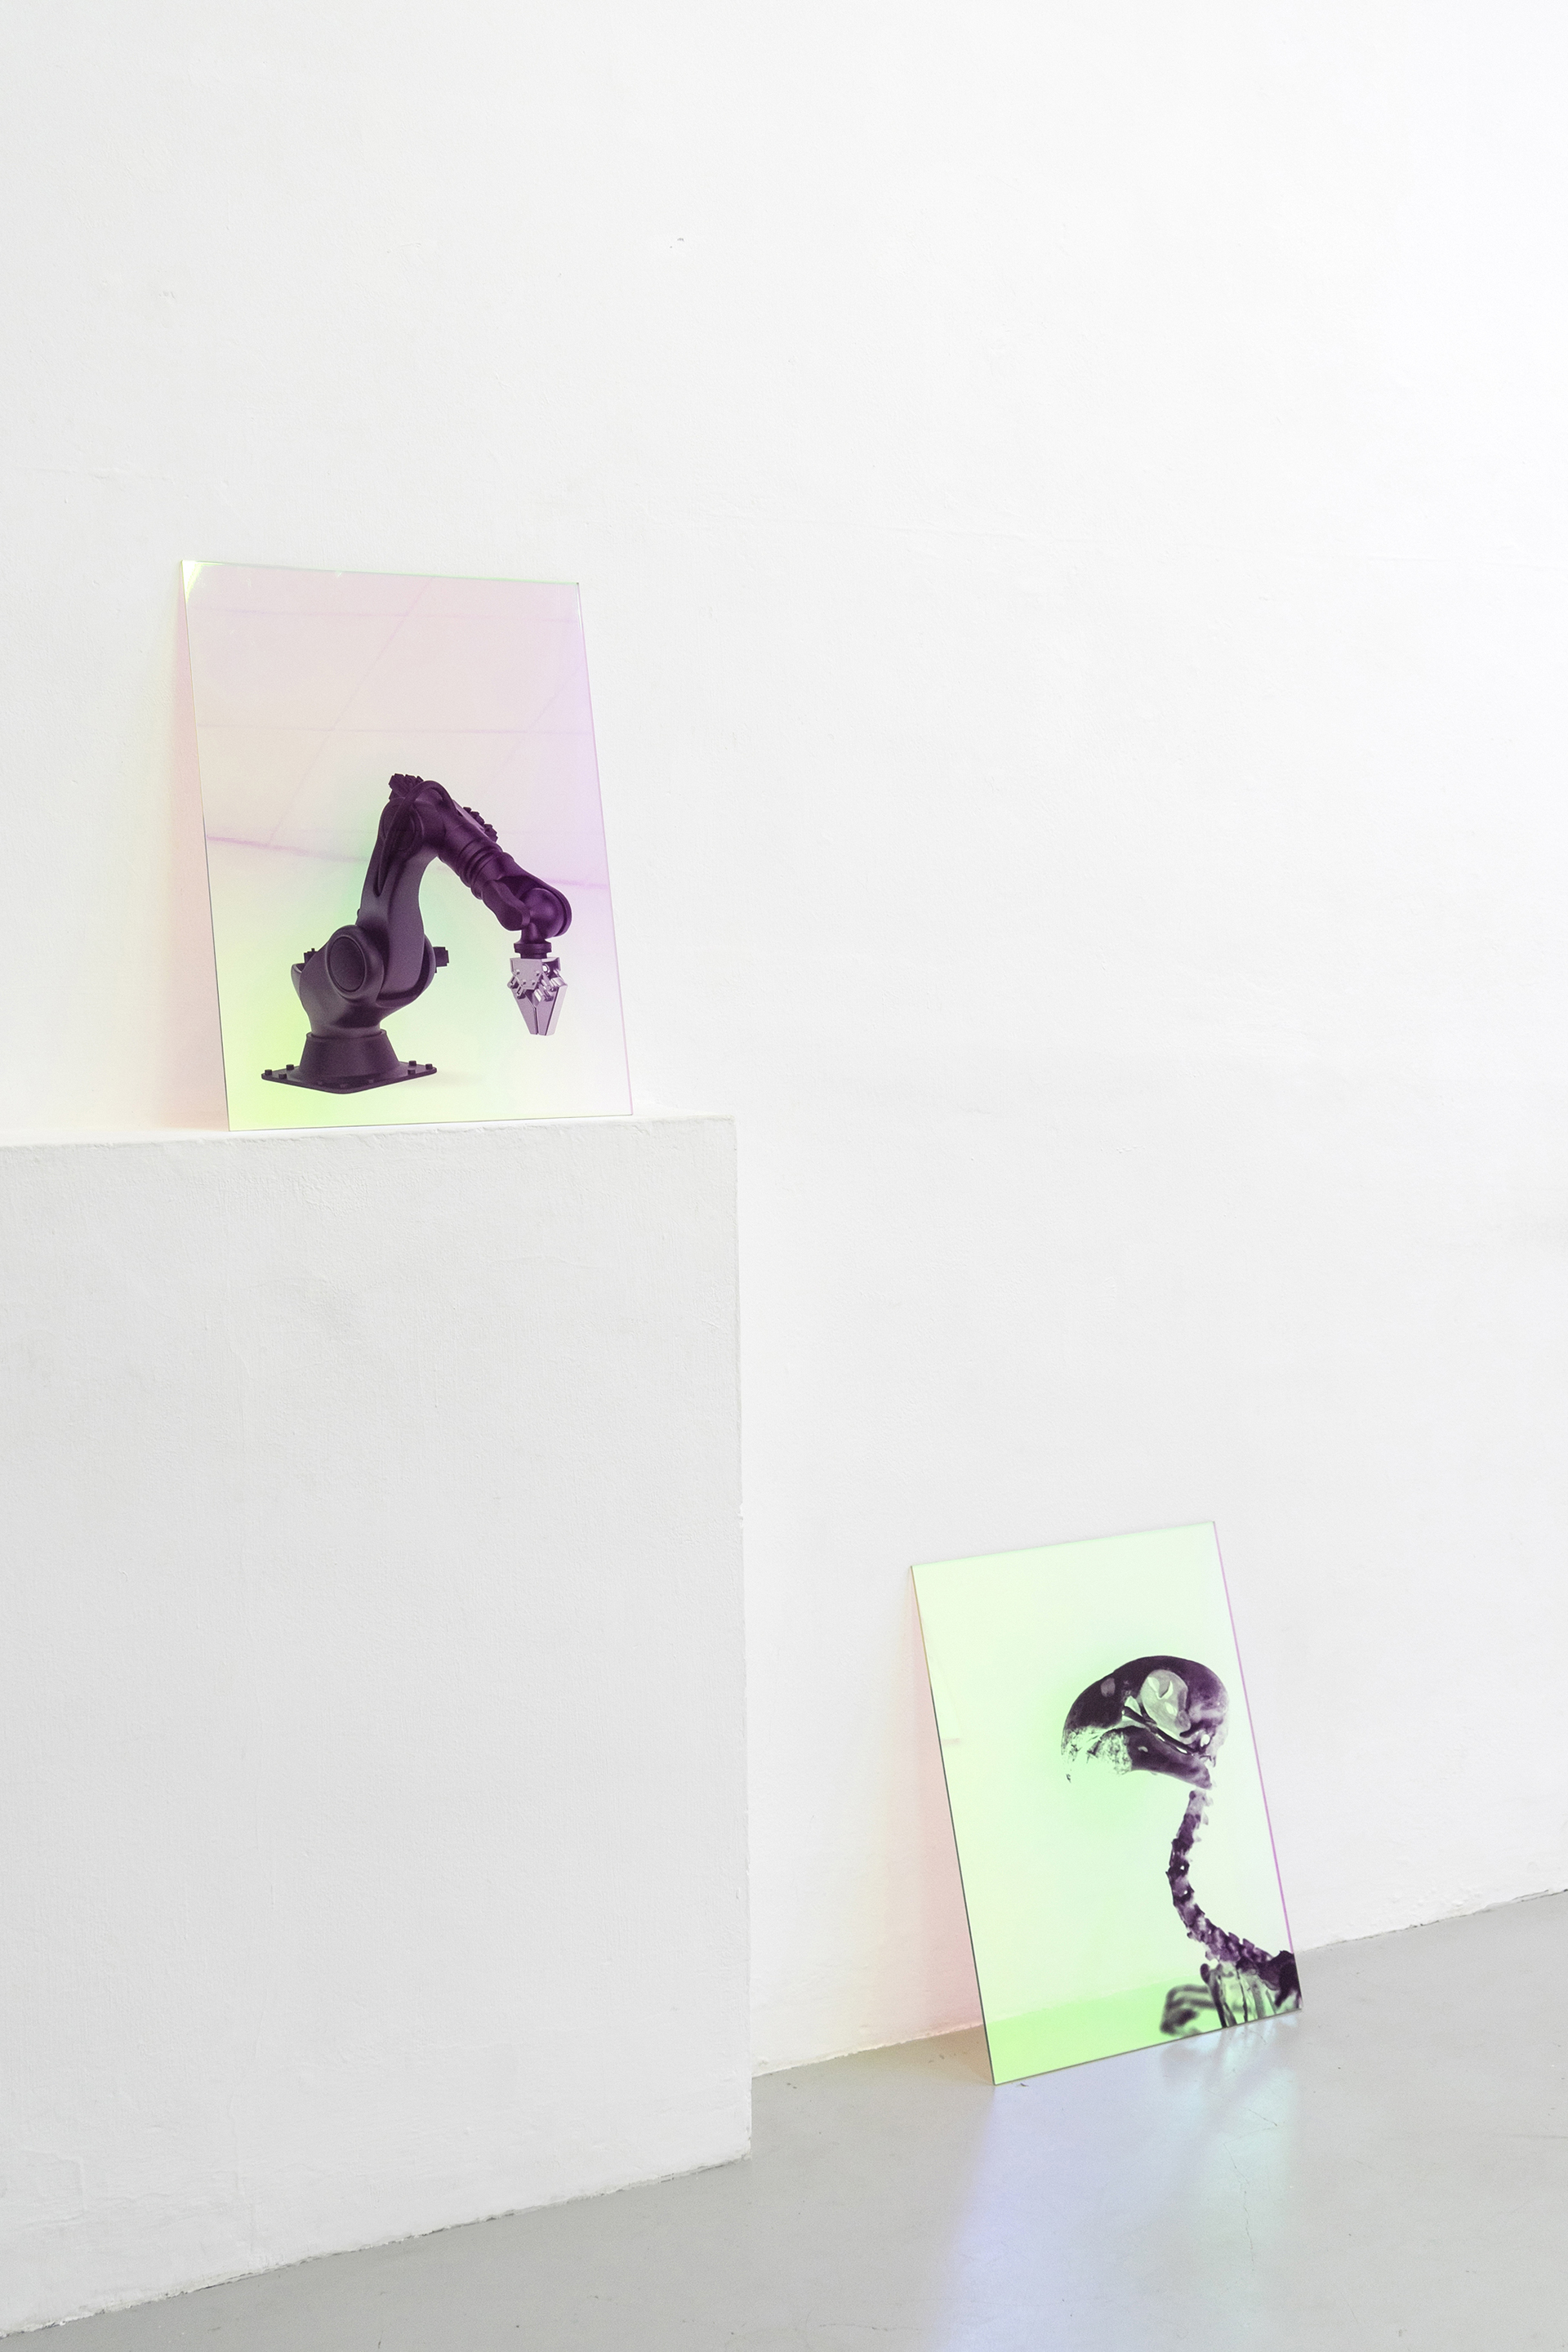 Postfossil (a2 /a3)  2019, Digital Print on dichroic film, acrylic, 60 x 45 cm Installation view at Dimora Artica, Milan